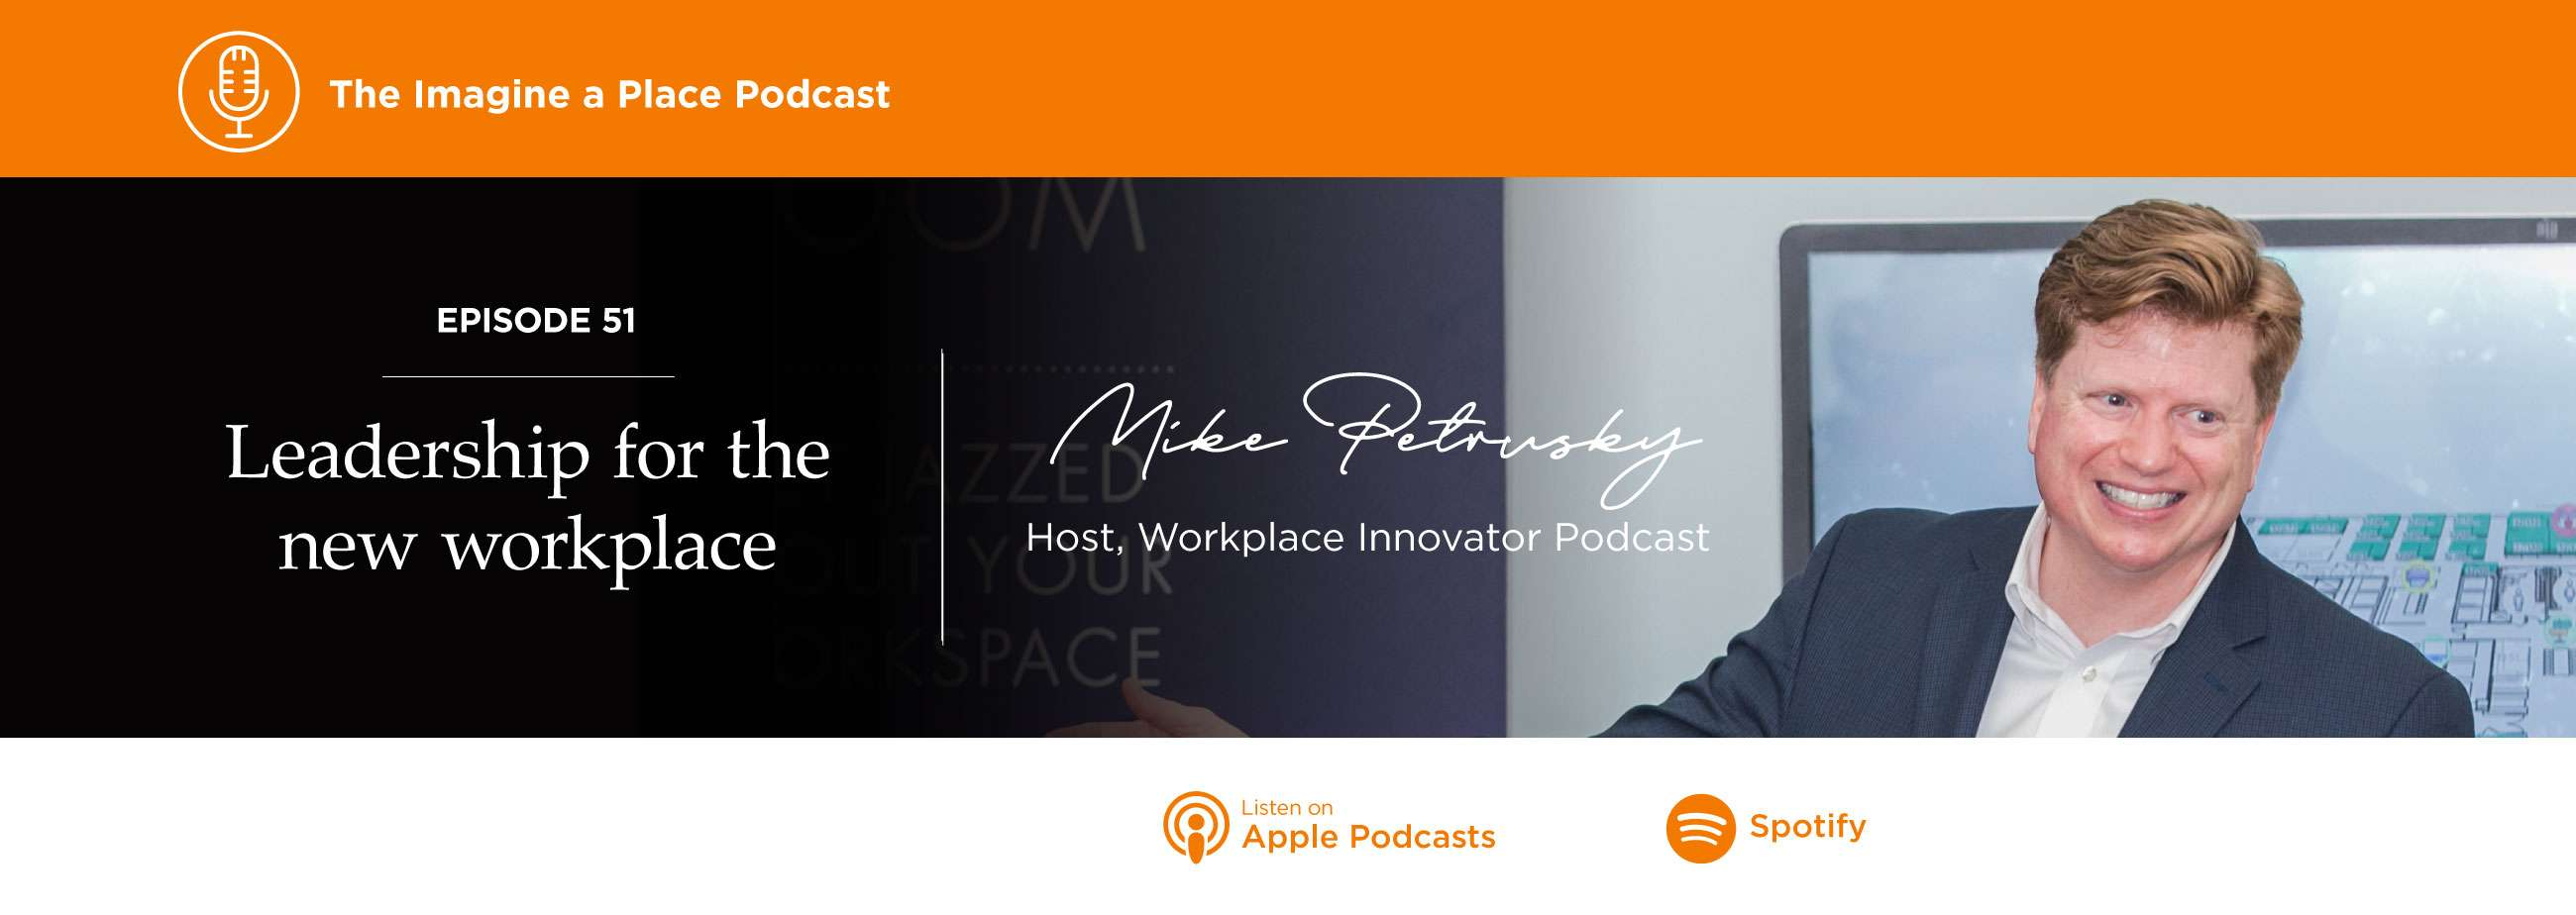 Mike Petrusky of Workplace Innovator Podcast on the Imagine a Place podcast by OFS